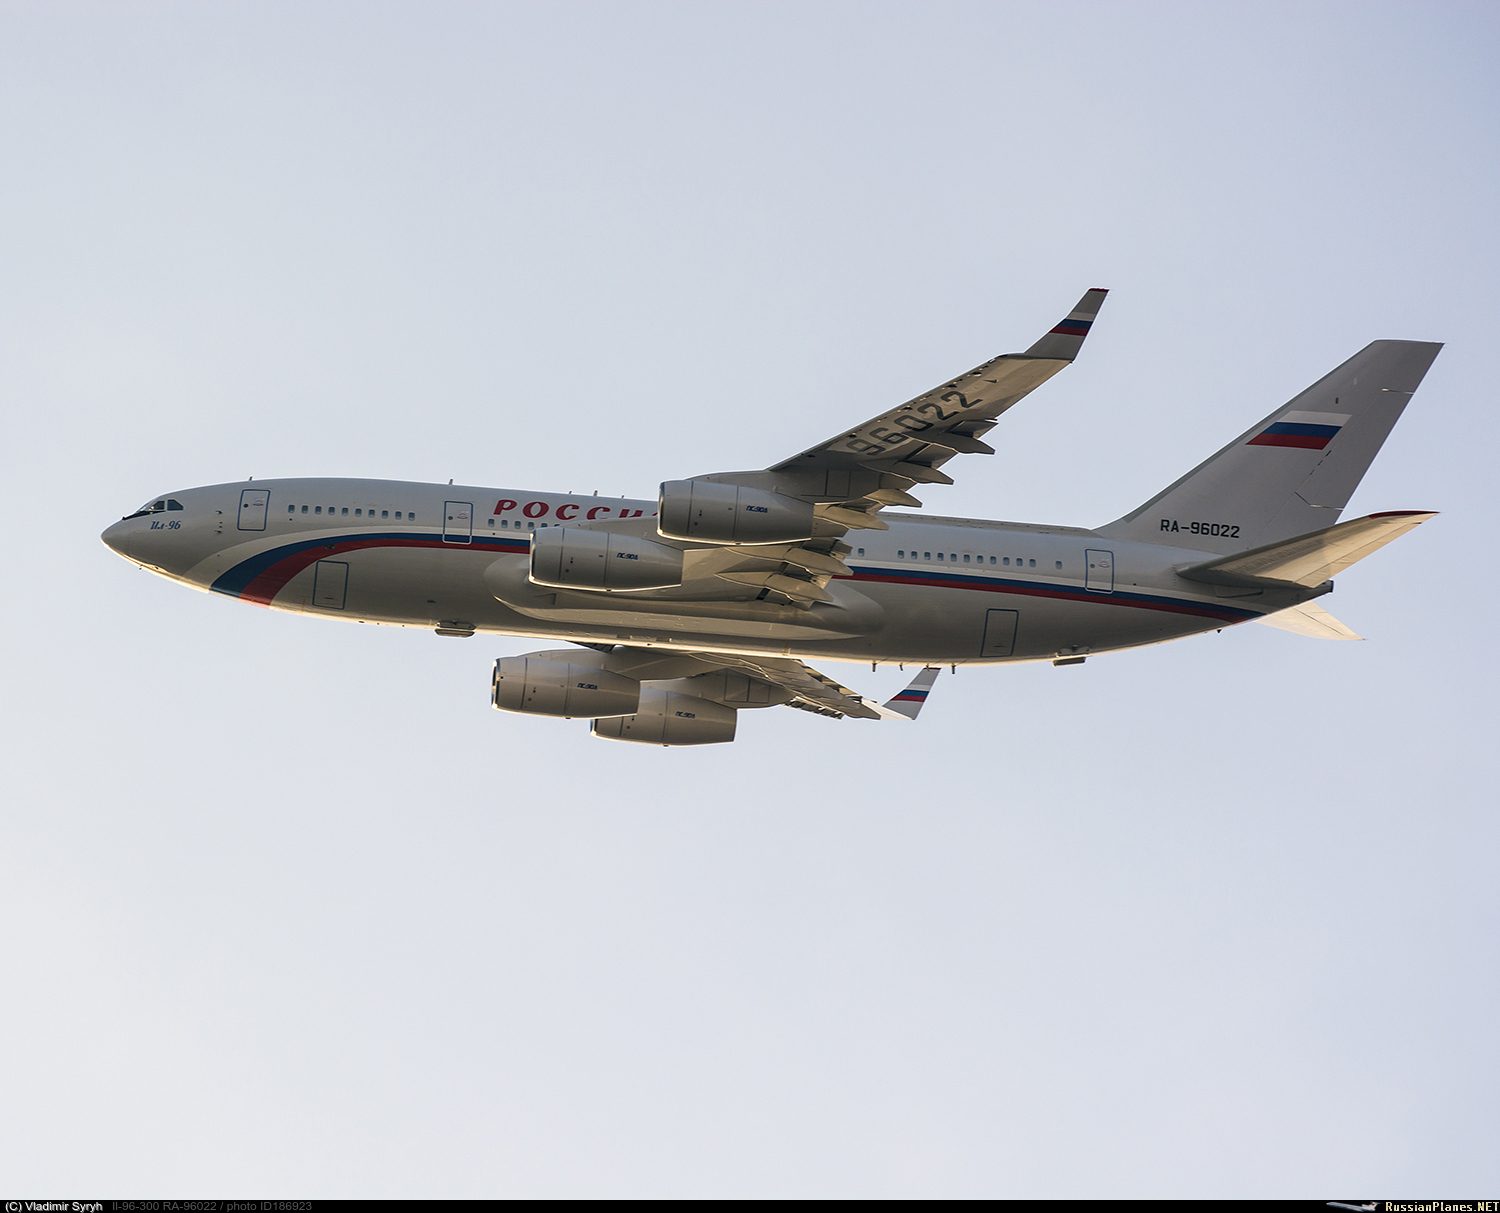 The Russian Aviation News 119